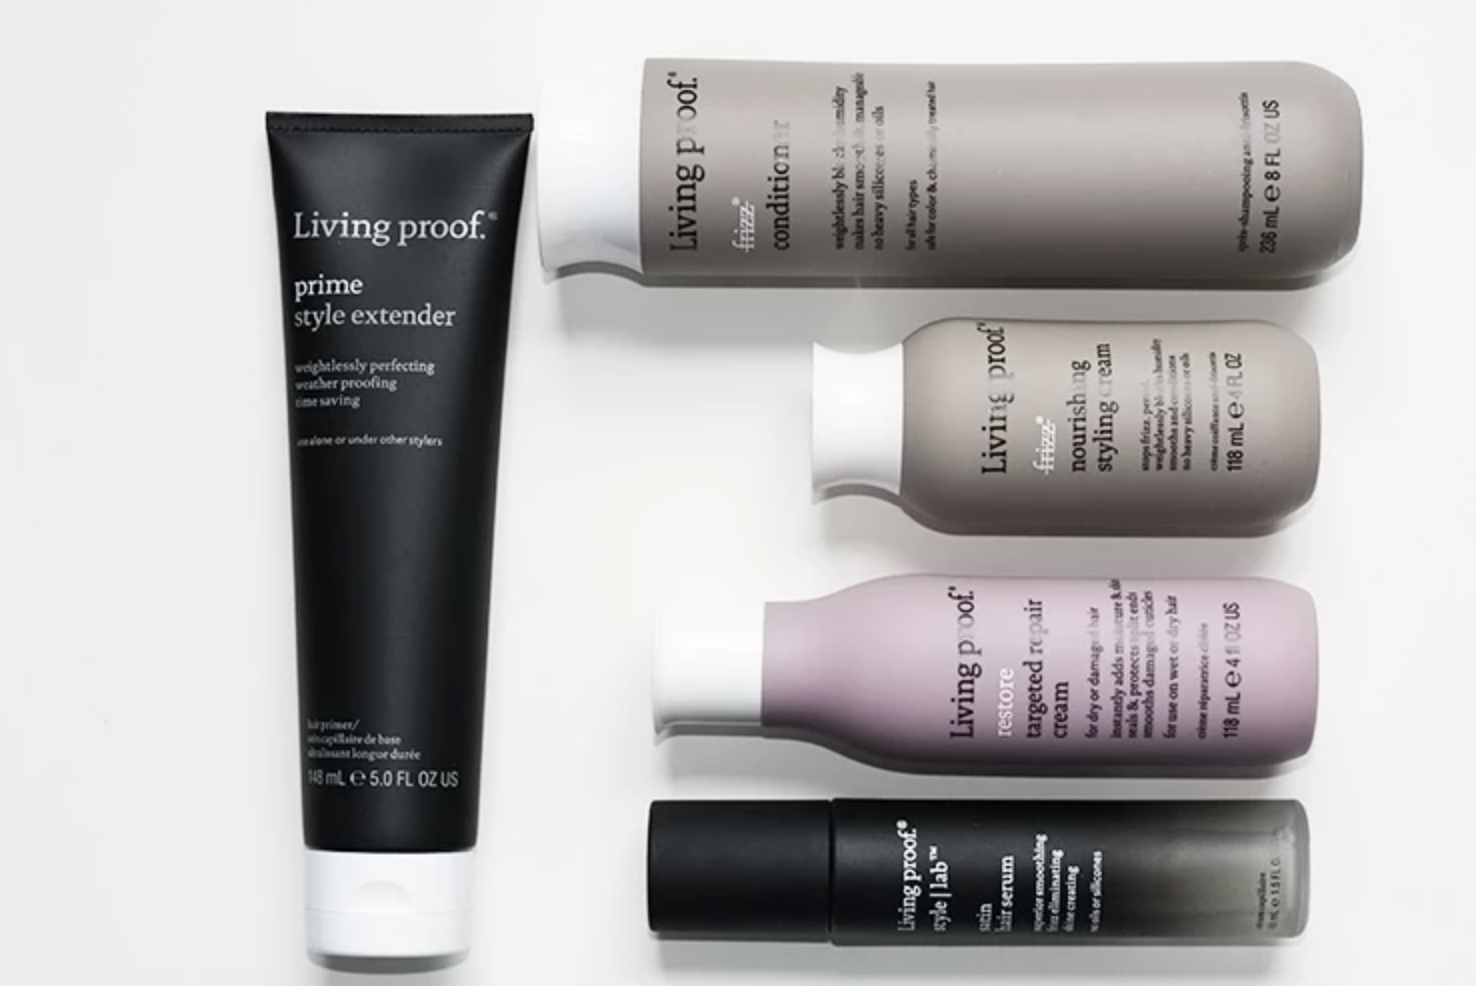 Living Proof products at Hair by Linda Marbella